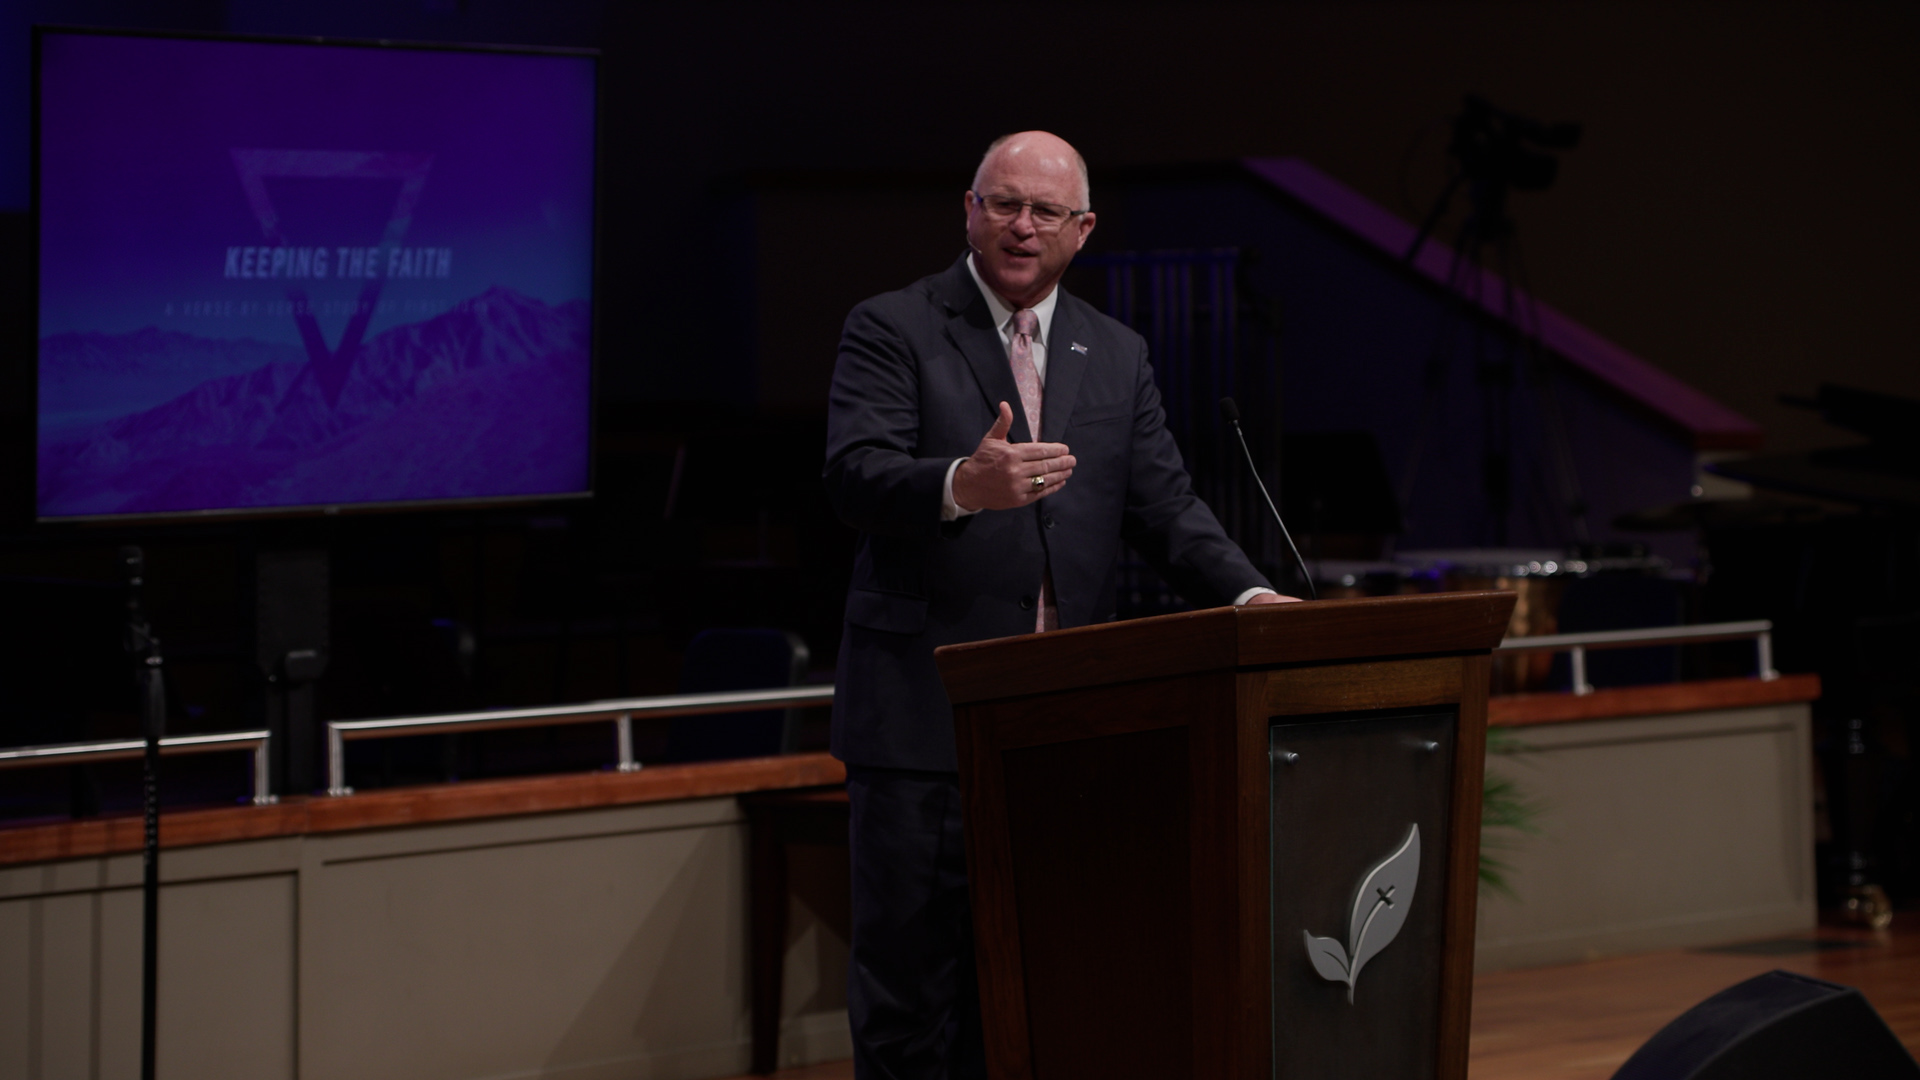 Pastor Paul Chappell: Keeping the Faith